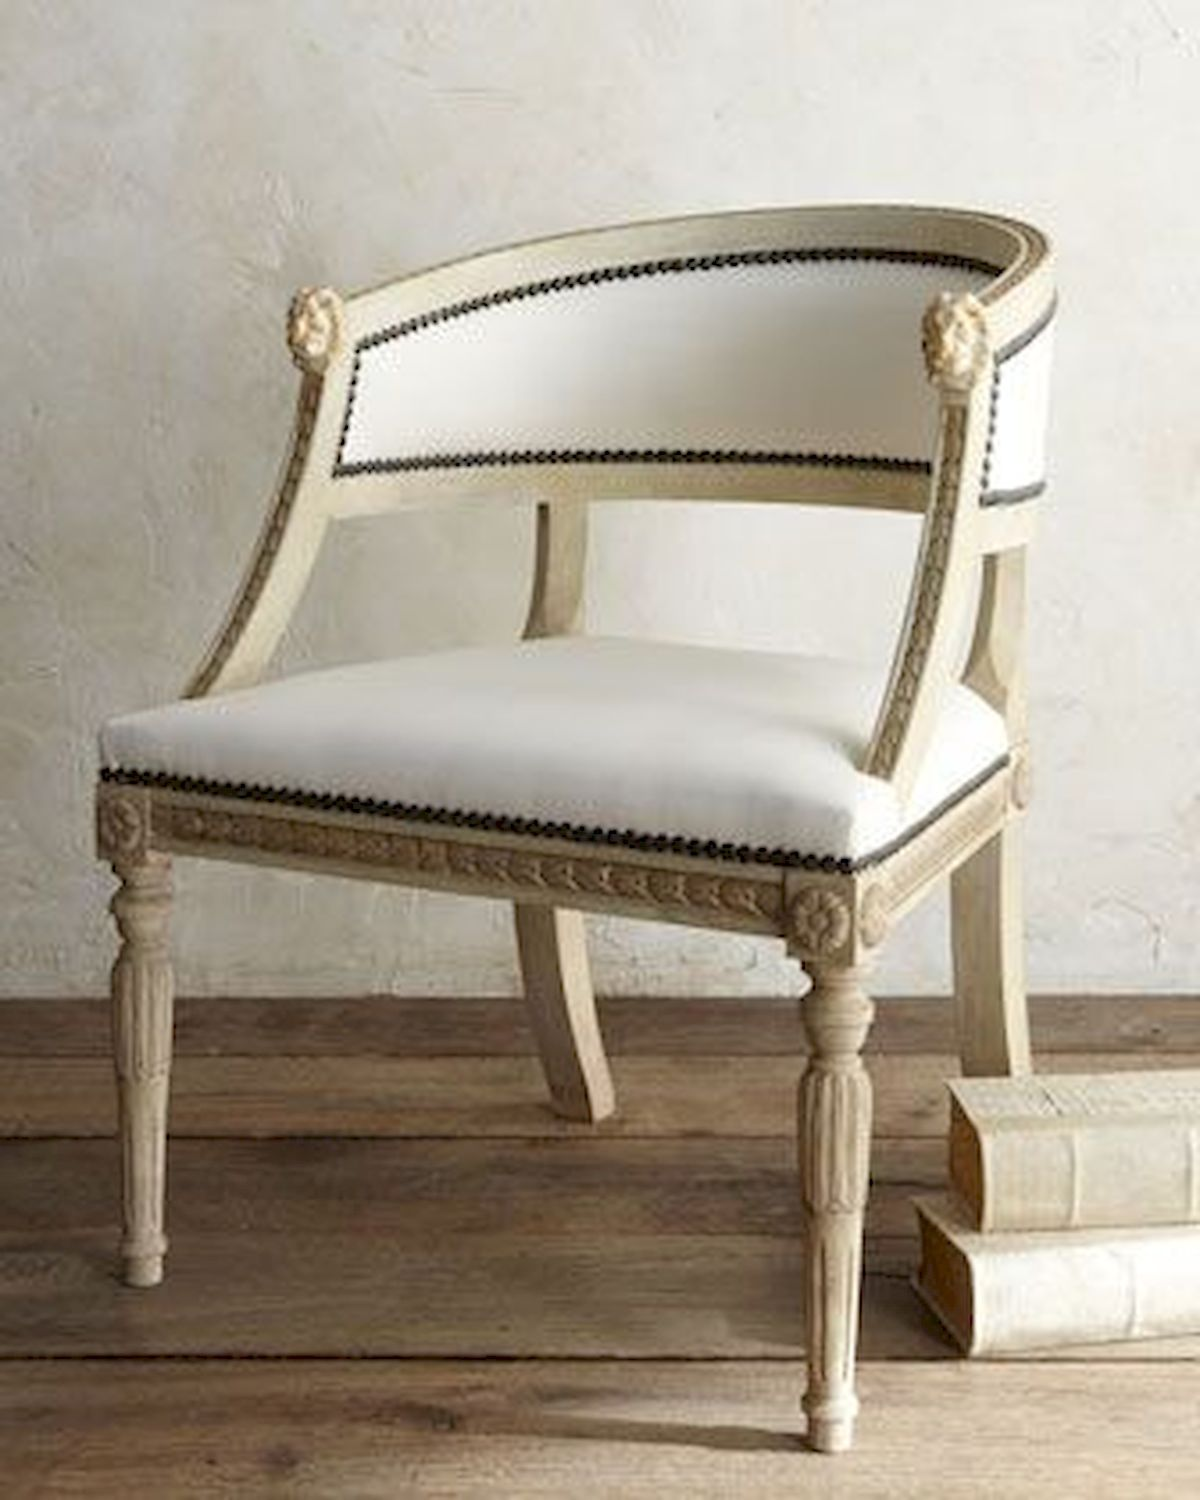 50 DIY Relaxing Chairs Design Ideas That Will Make Your Home Look Great (3)